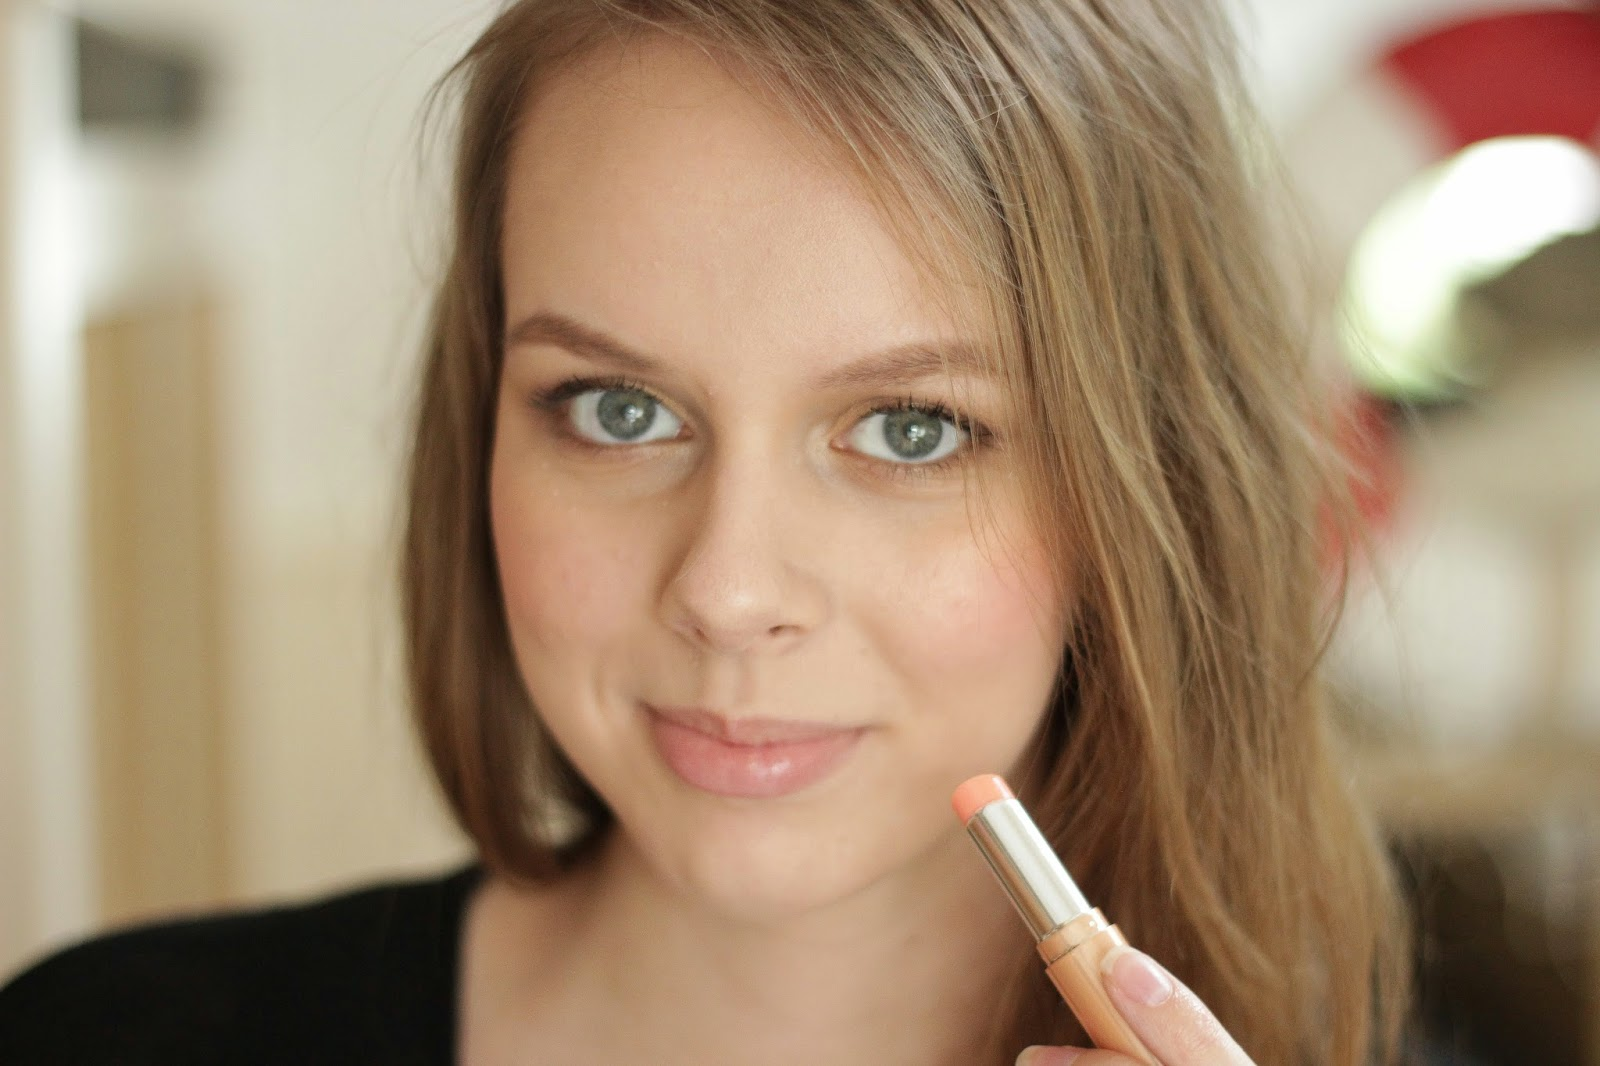 hema pretty lips lipgloss creamy peach